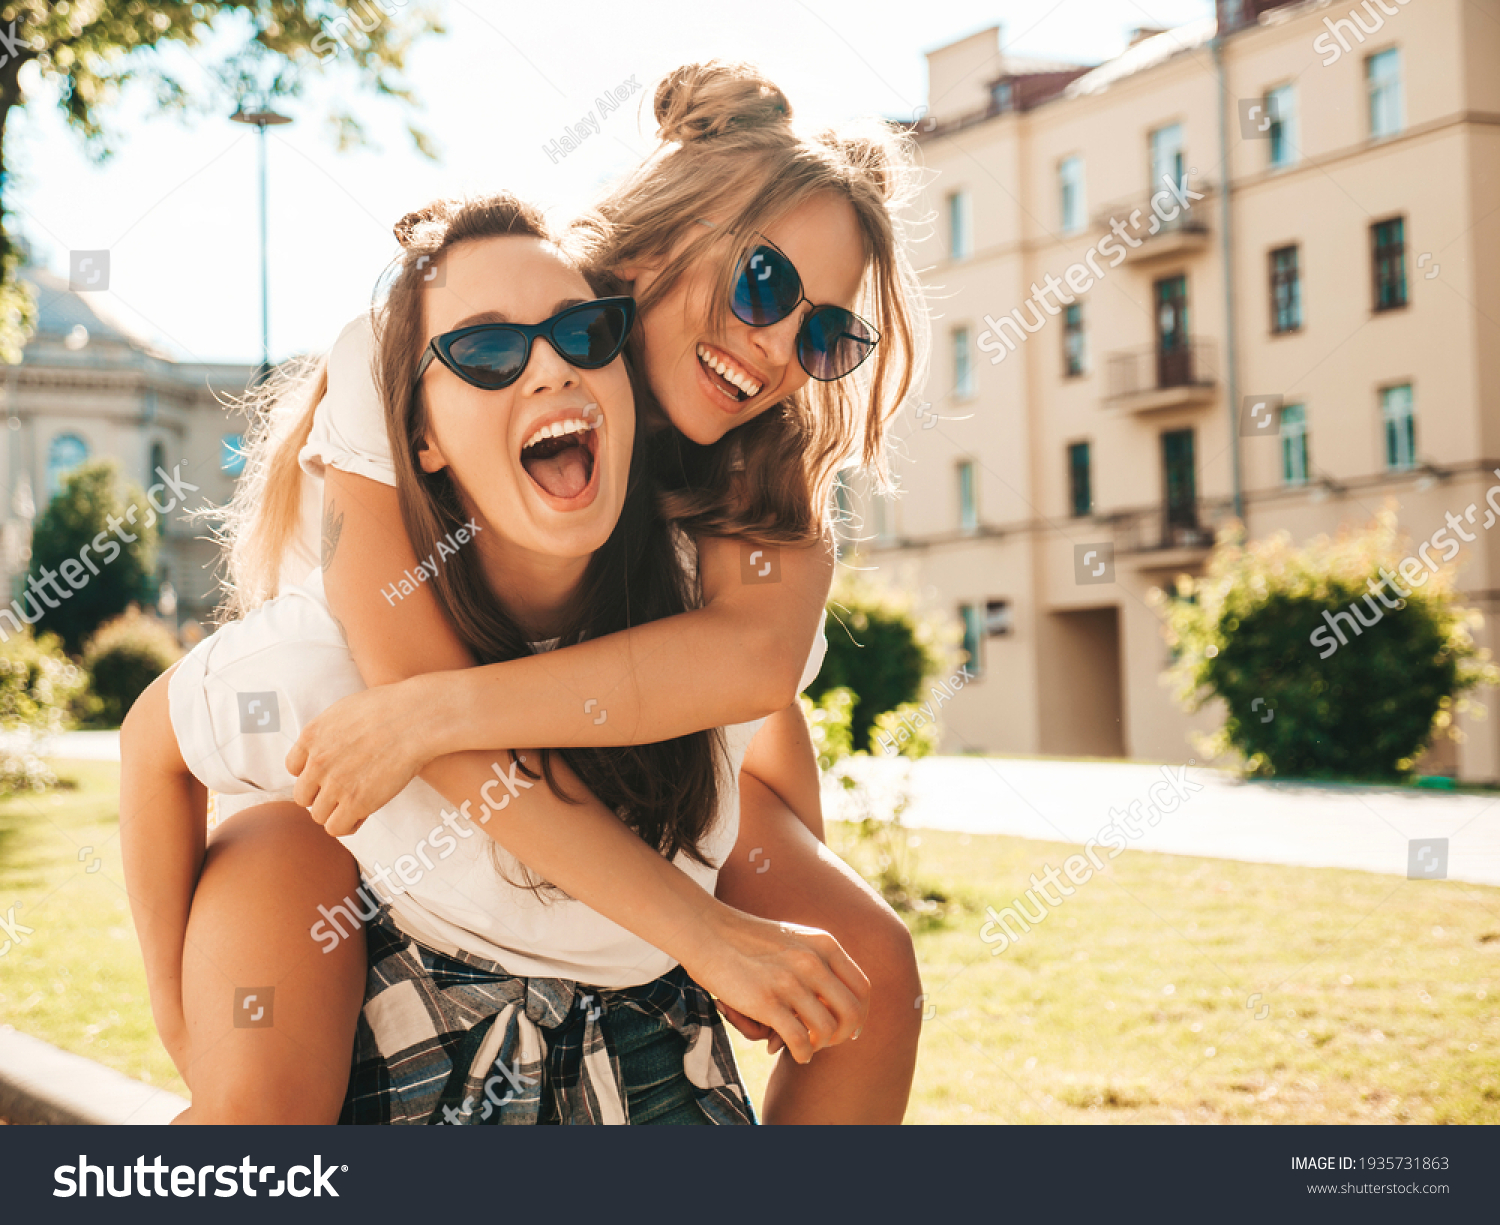 Two young beautiful smiling hipster female in trendy summer white t-shirt clothes.Sexy carefree women posing on street background. Model jumping on her friend back, gives piggyback riding outdoors #1935731863